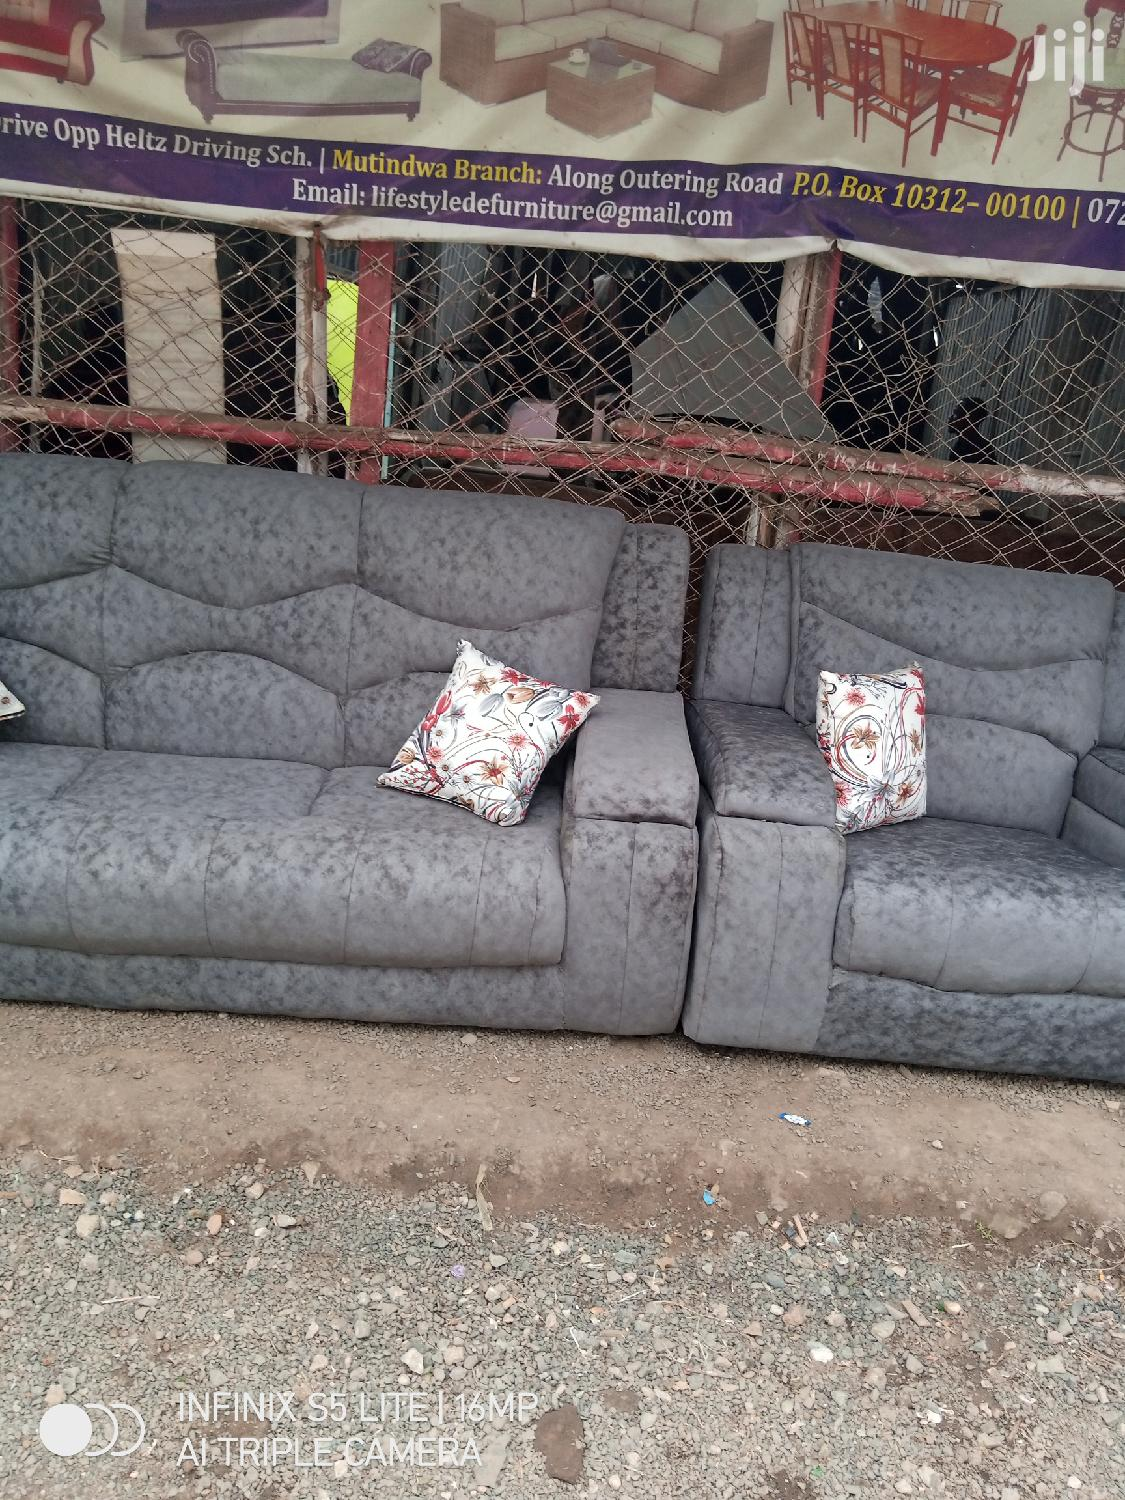 5 Seater Recliner Sofa's | Furniture for sale in Umoja I, Nairobi, Kenya